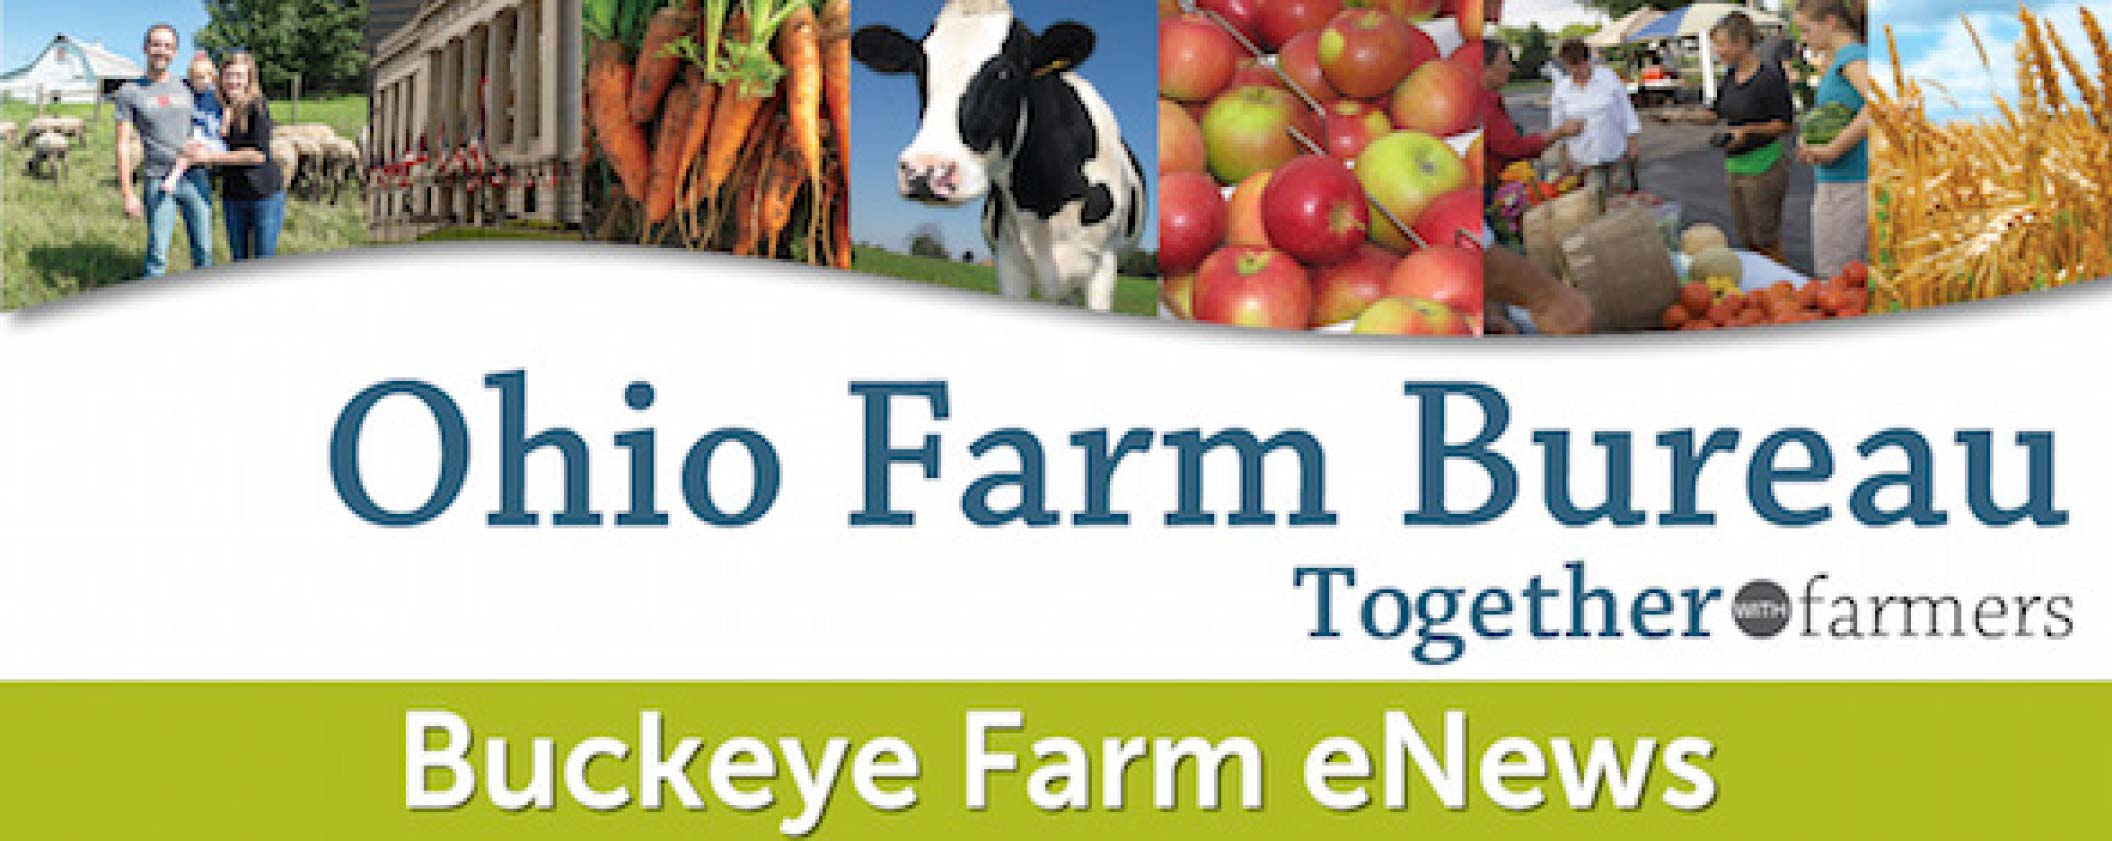 2018-media-kit-buckeye-farm-enews